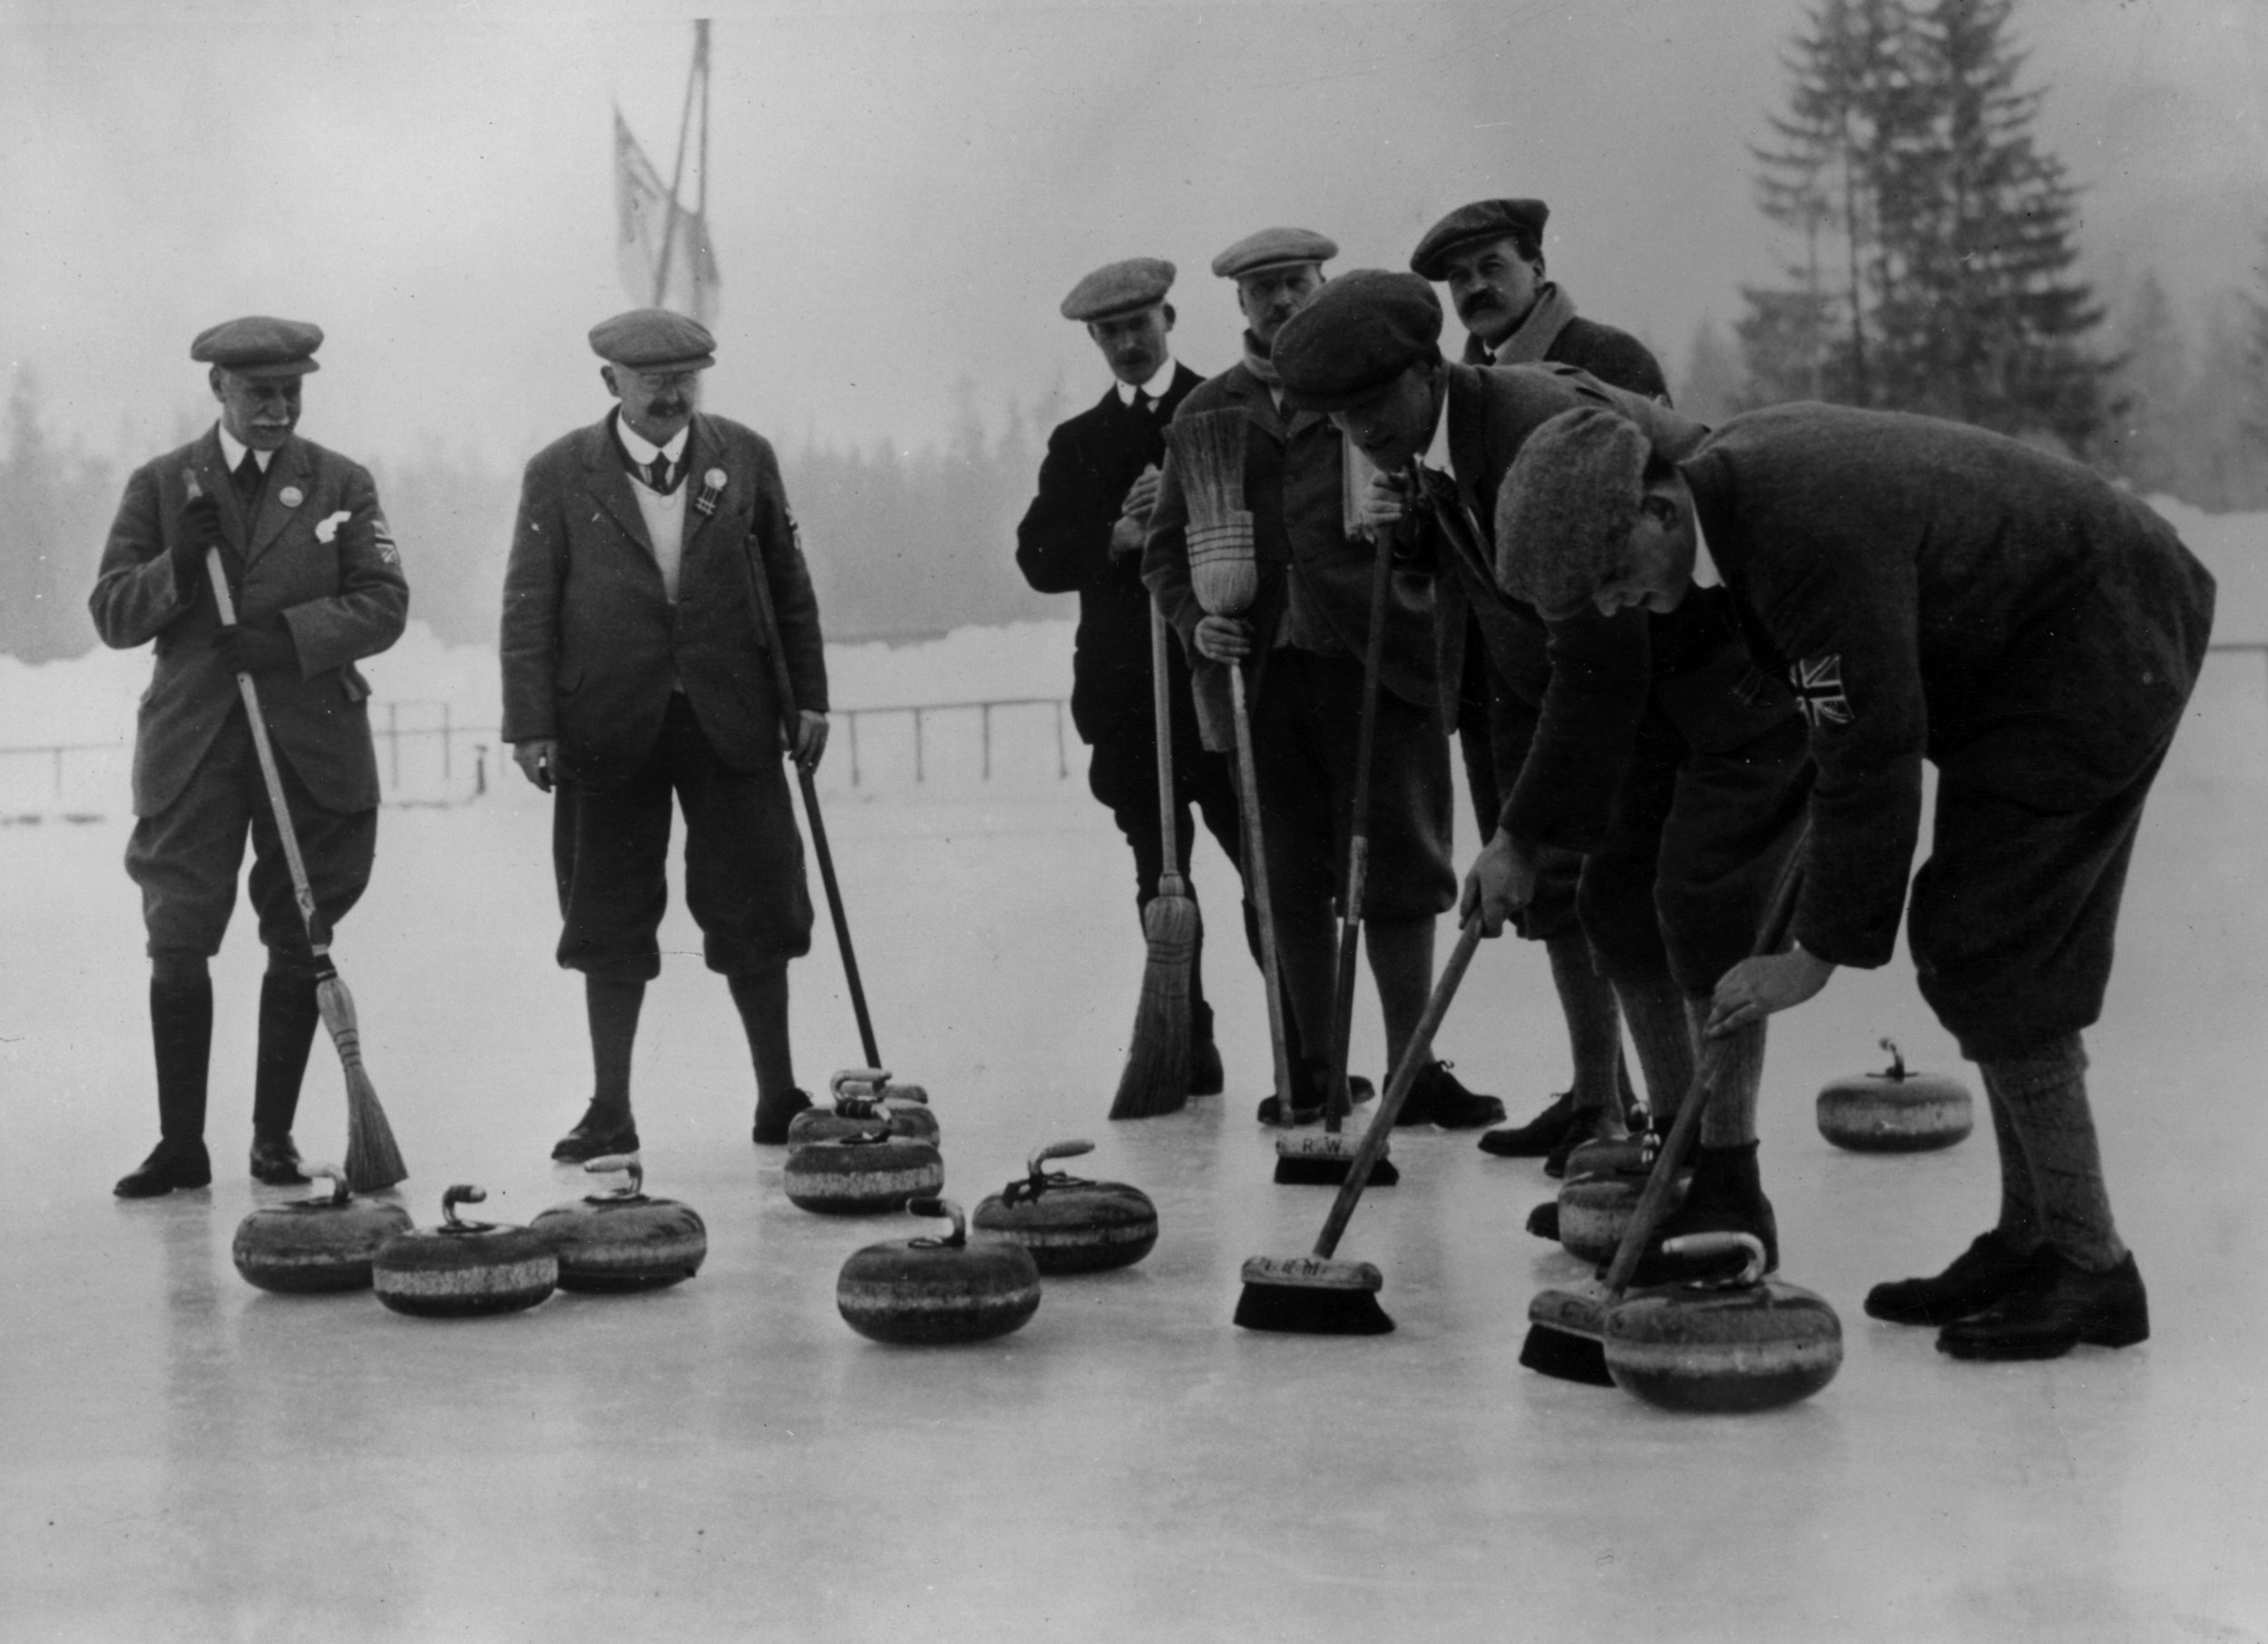 British curling team at the Olympic Games in Chamonix, France, 1924